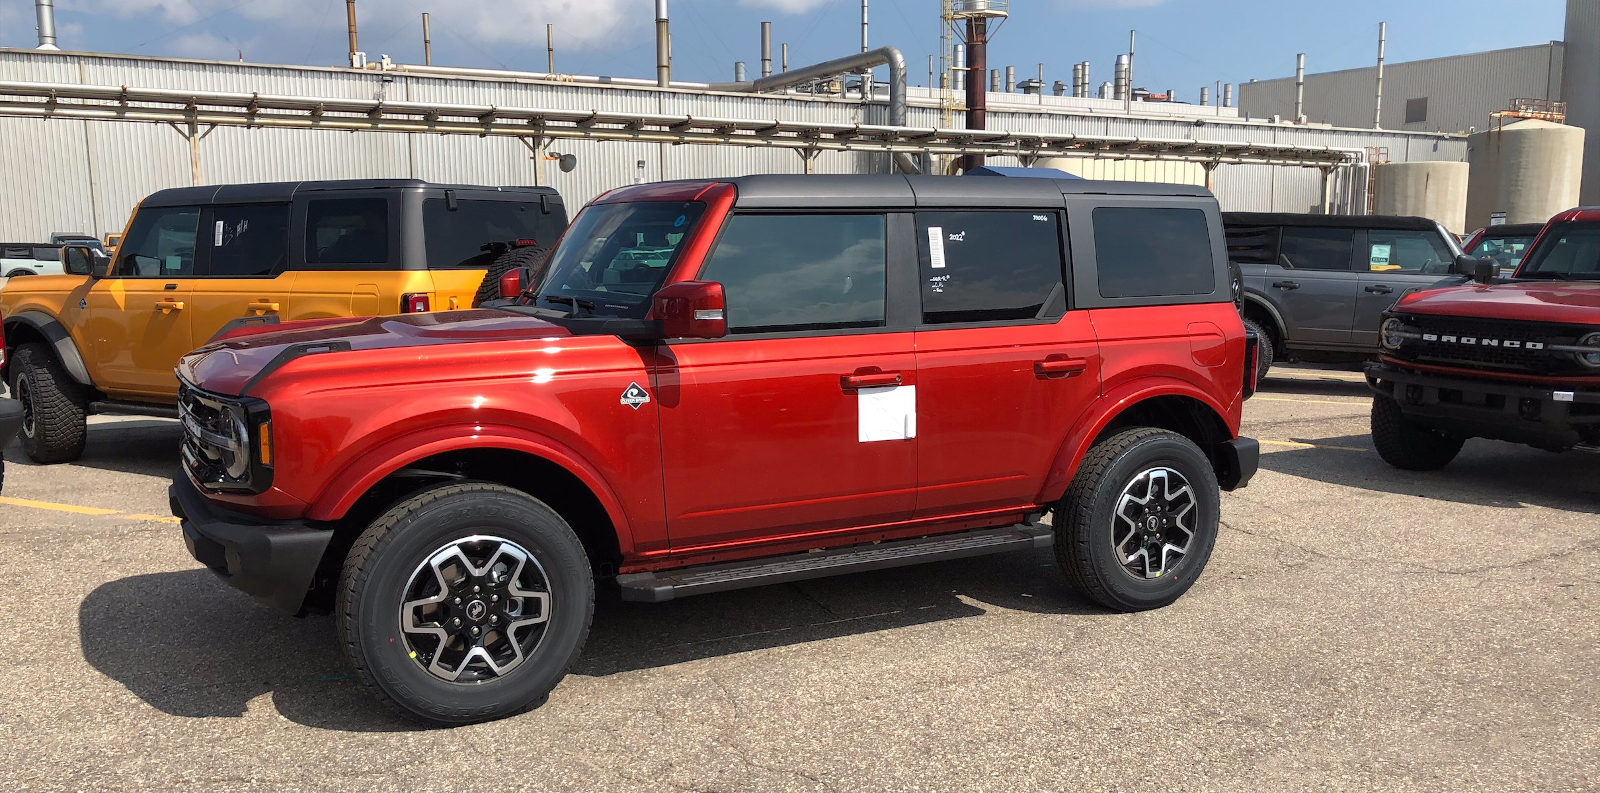 First Look on a Bronco: Hot Pepper Red